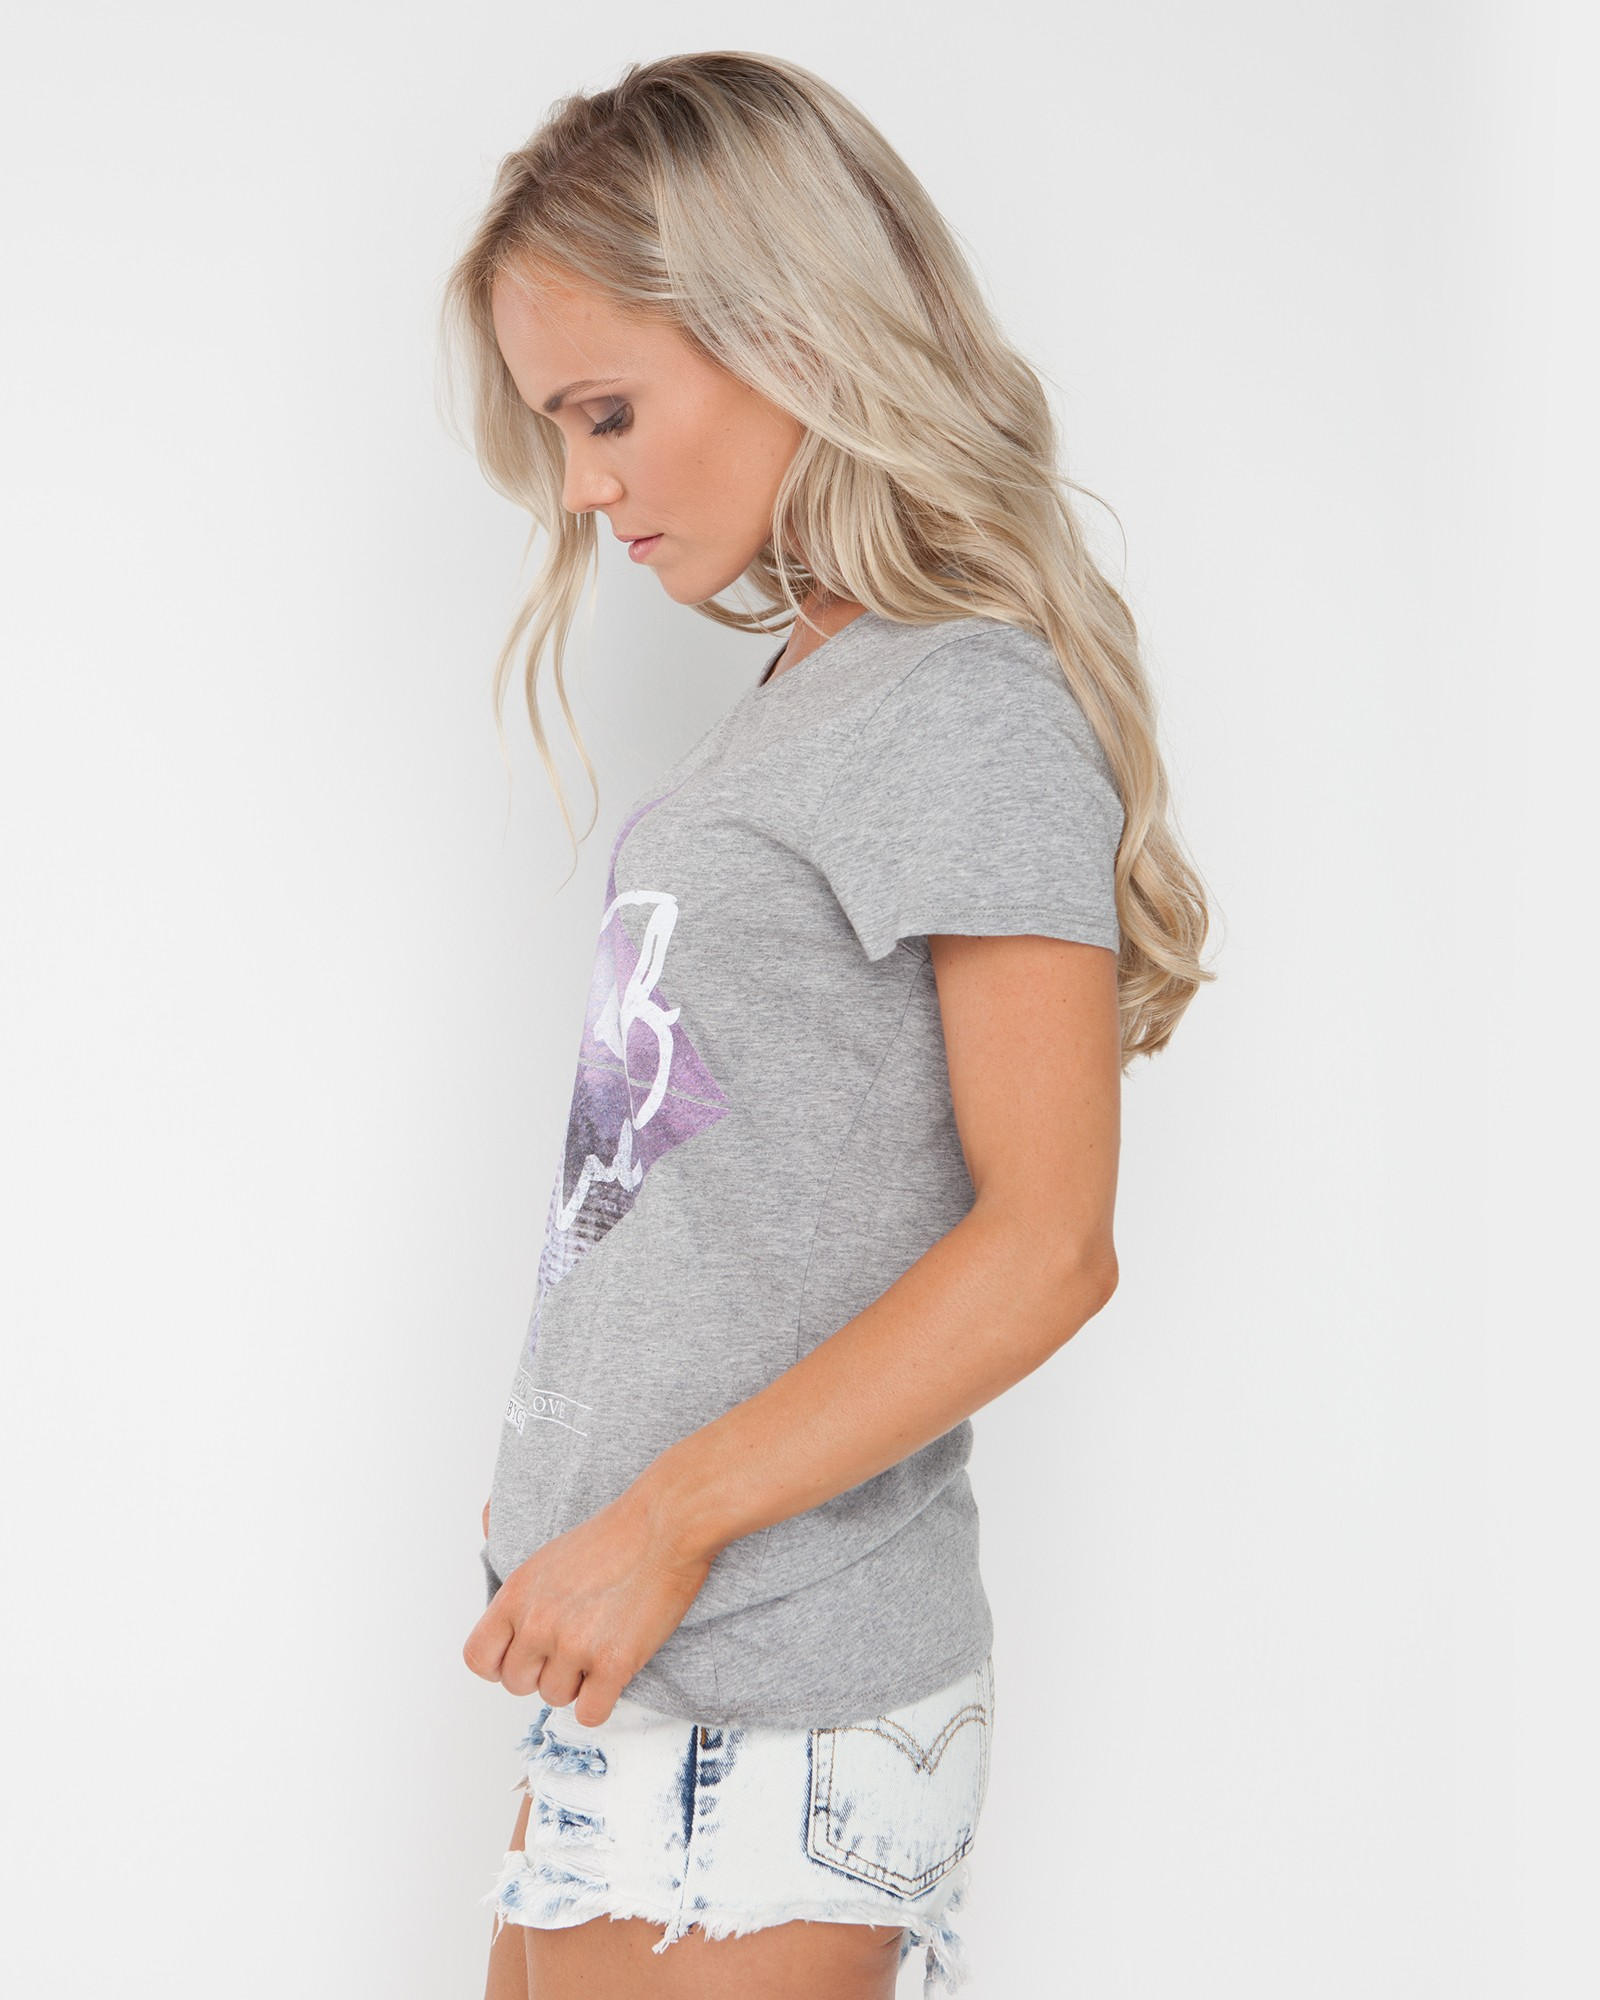 OUT OF LOVE MARBLE GREY TEE